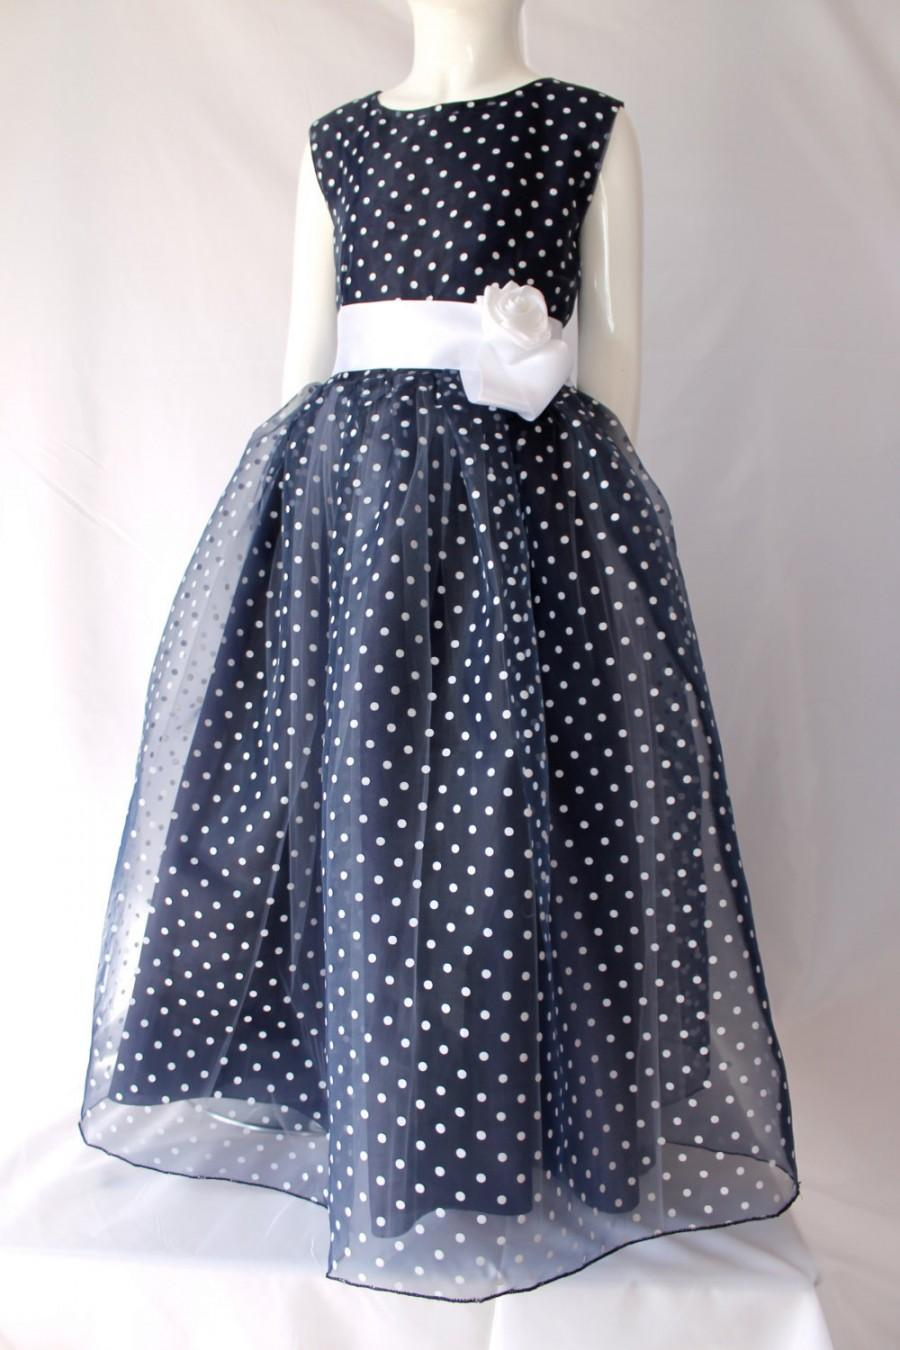 Mariage - Flower Girl dress Navy Blue and White Polka Dot Dress and Headband matching the dress, for bridal wedding party and for special occasion.